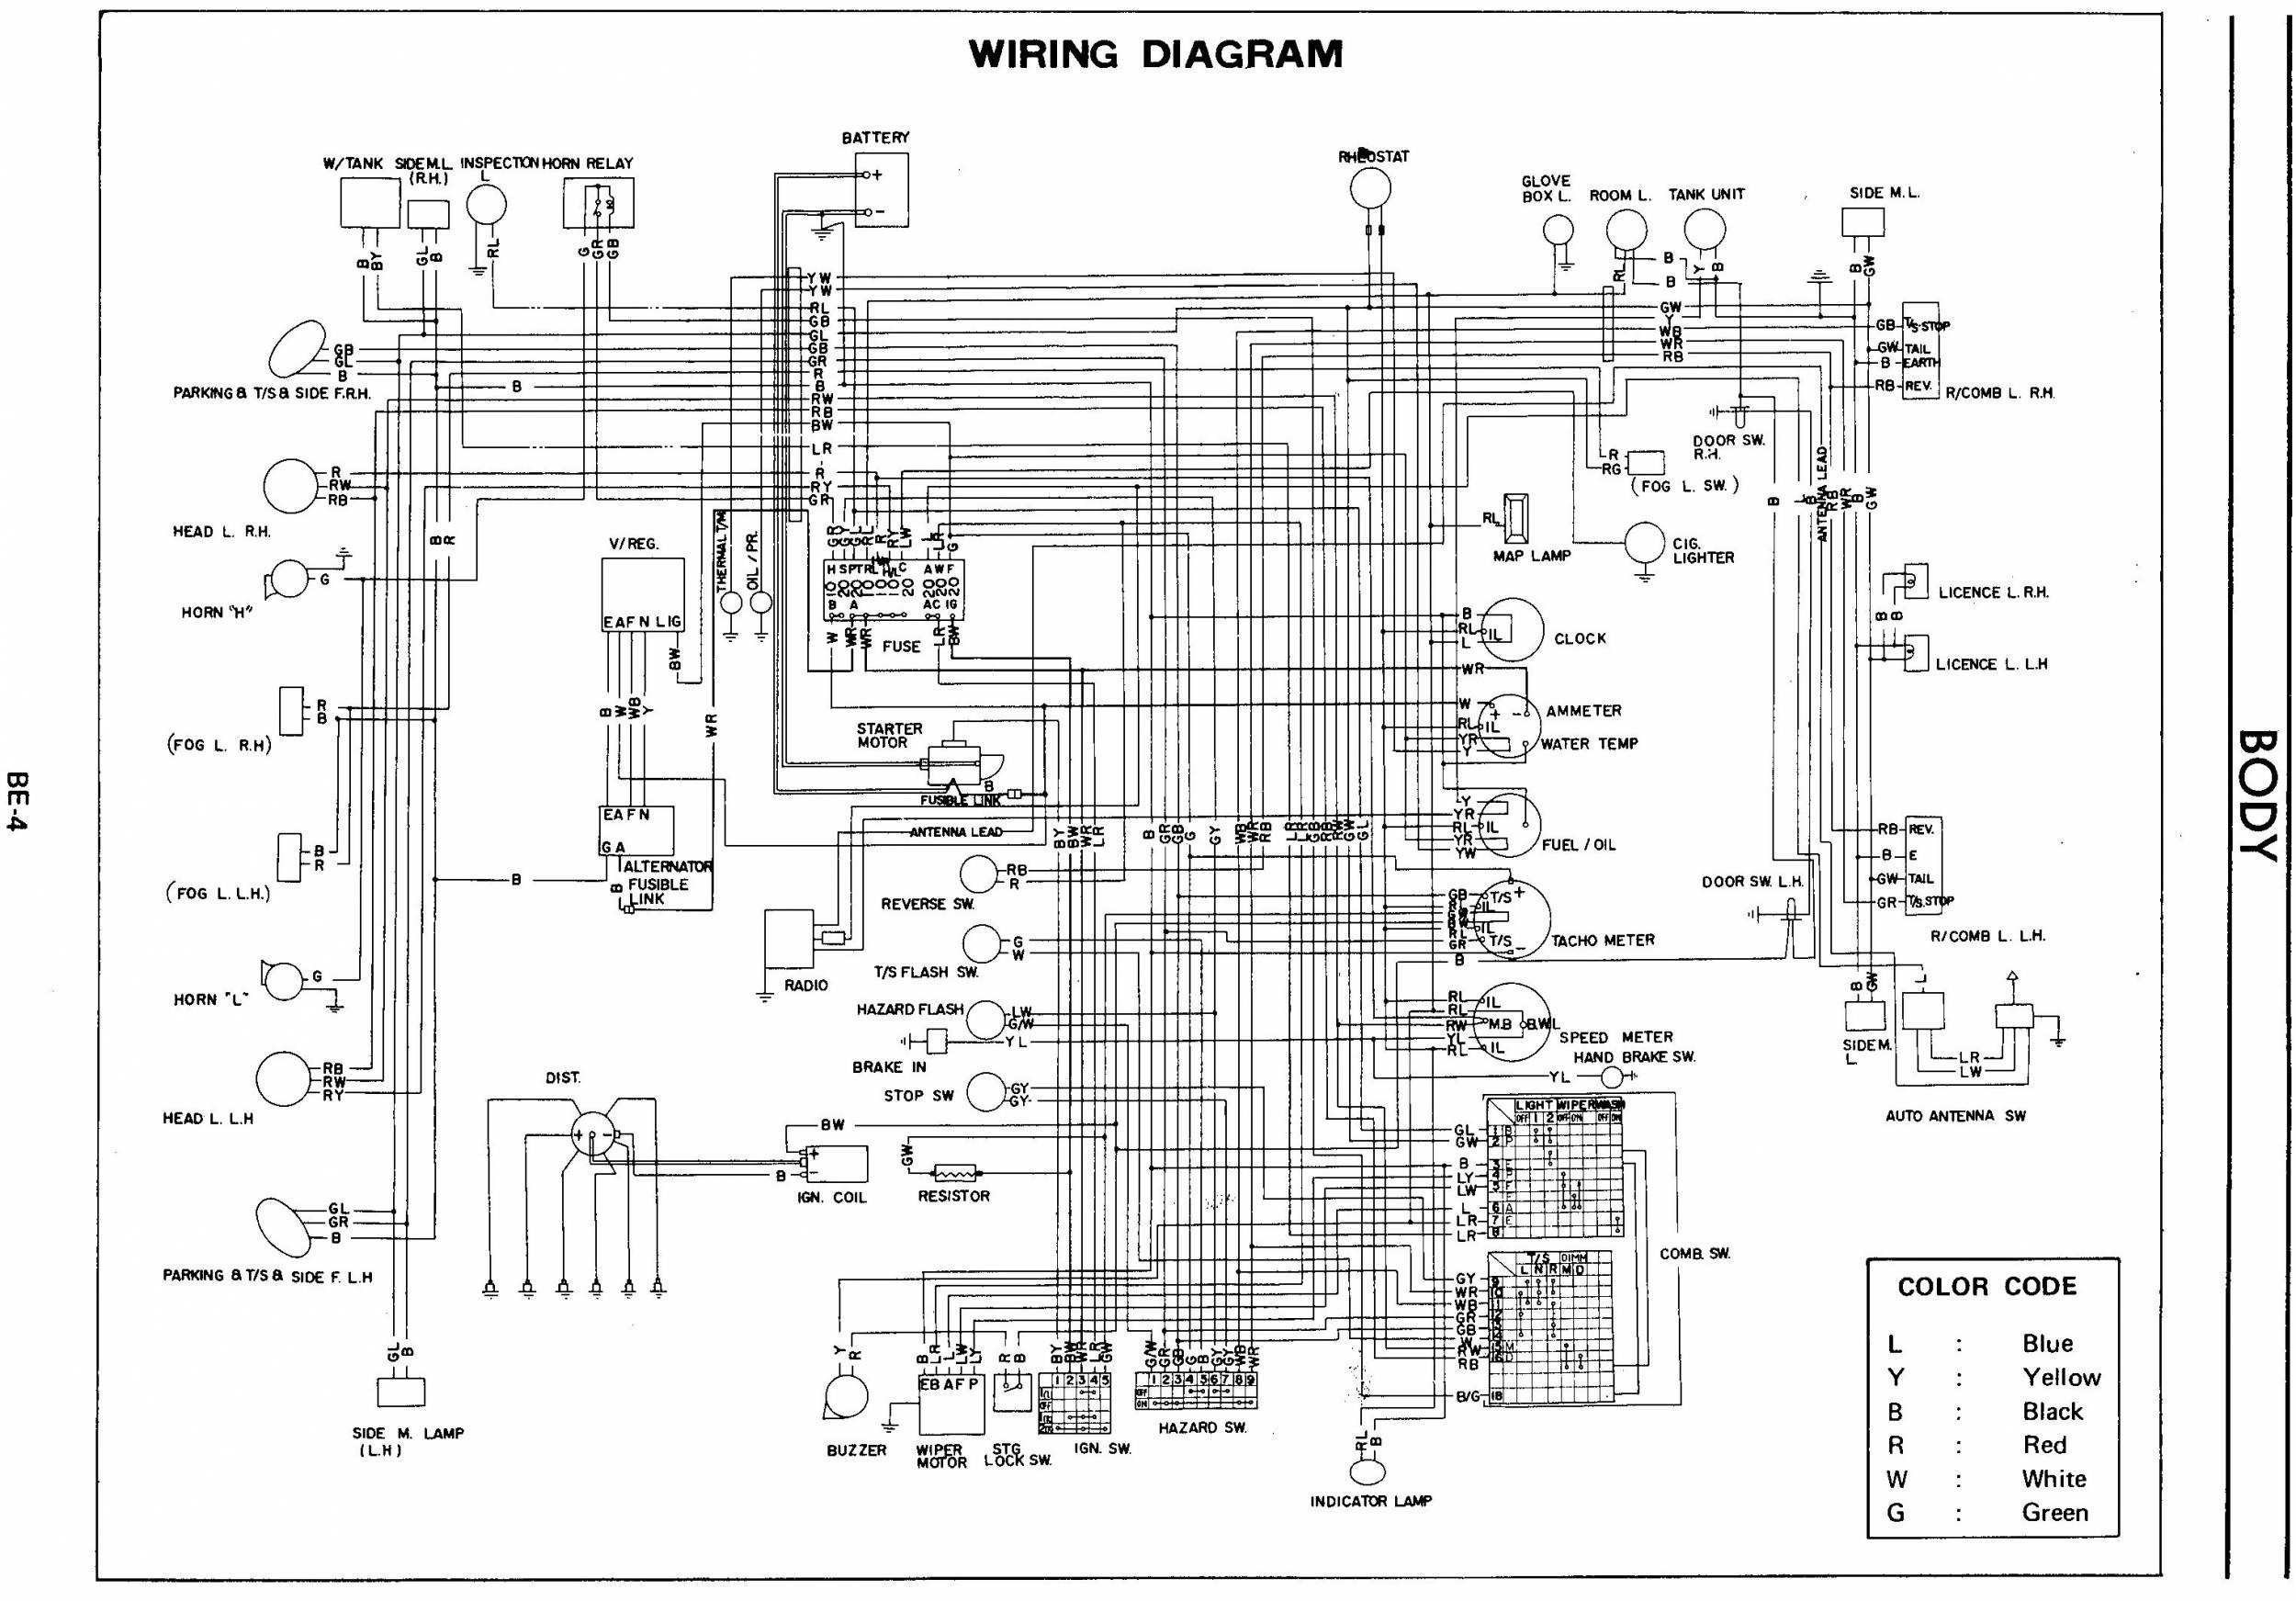 Mercedes Benz Wiring Diagram Mercedes Benz Wiring Diagram Altermator Data Wiring Diagrams • Of Mercedes Benz Wiring Diagram